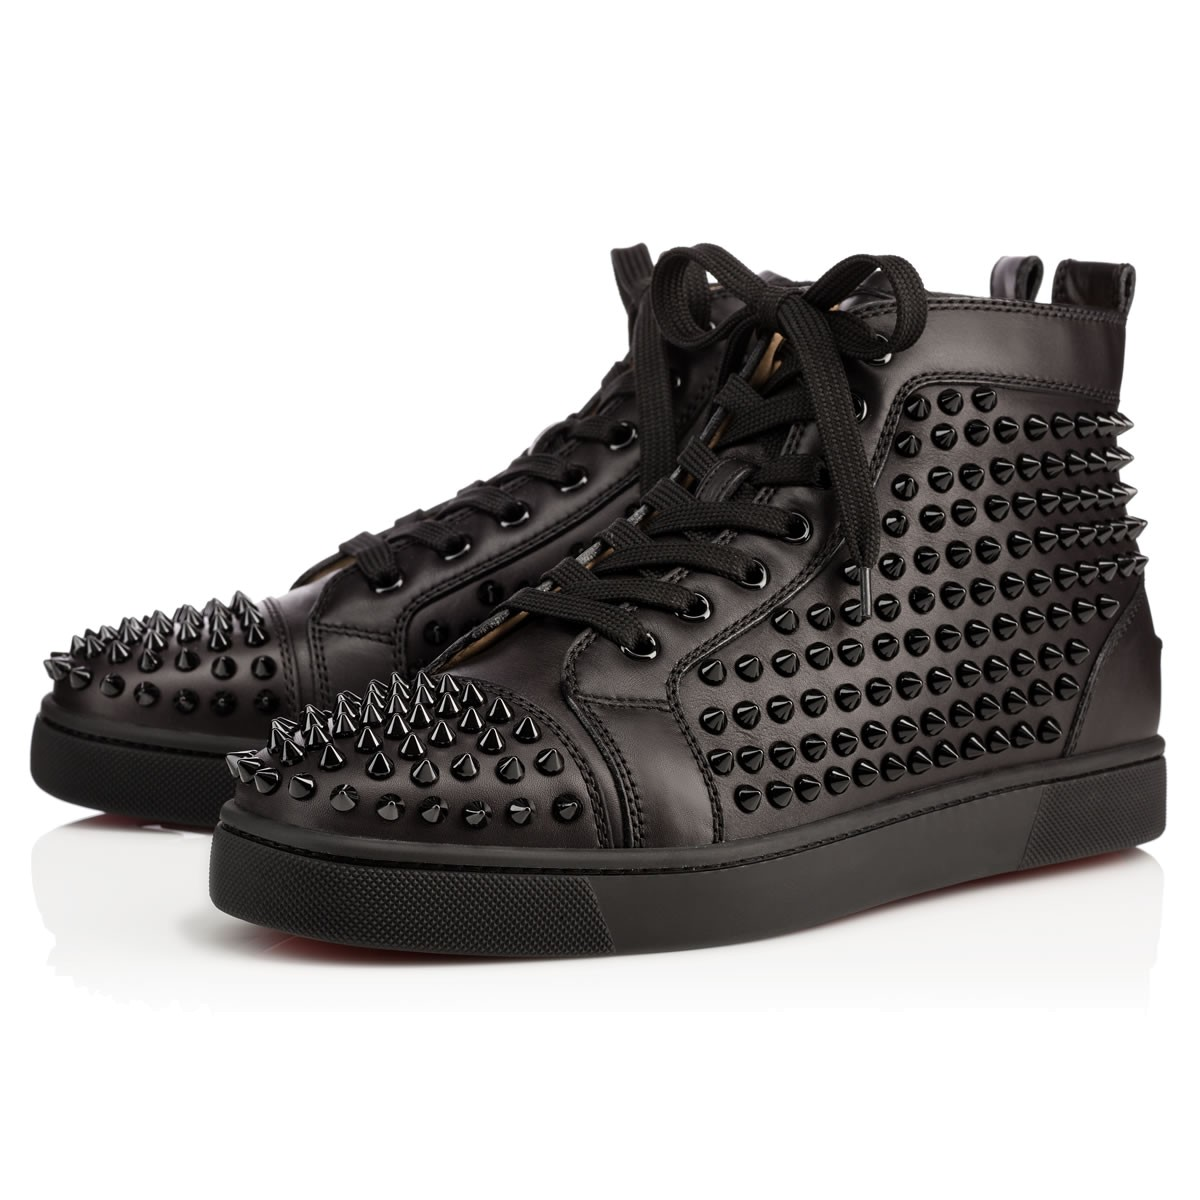 low priced 8148b 7e7b2 Louis Spikes Black/Black/Bk Leather - Men Shoes - Christian Louboutin